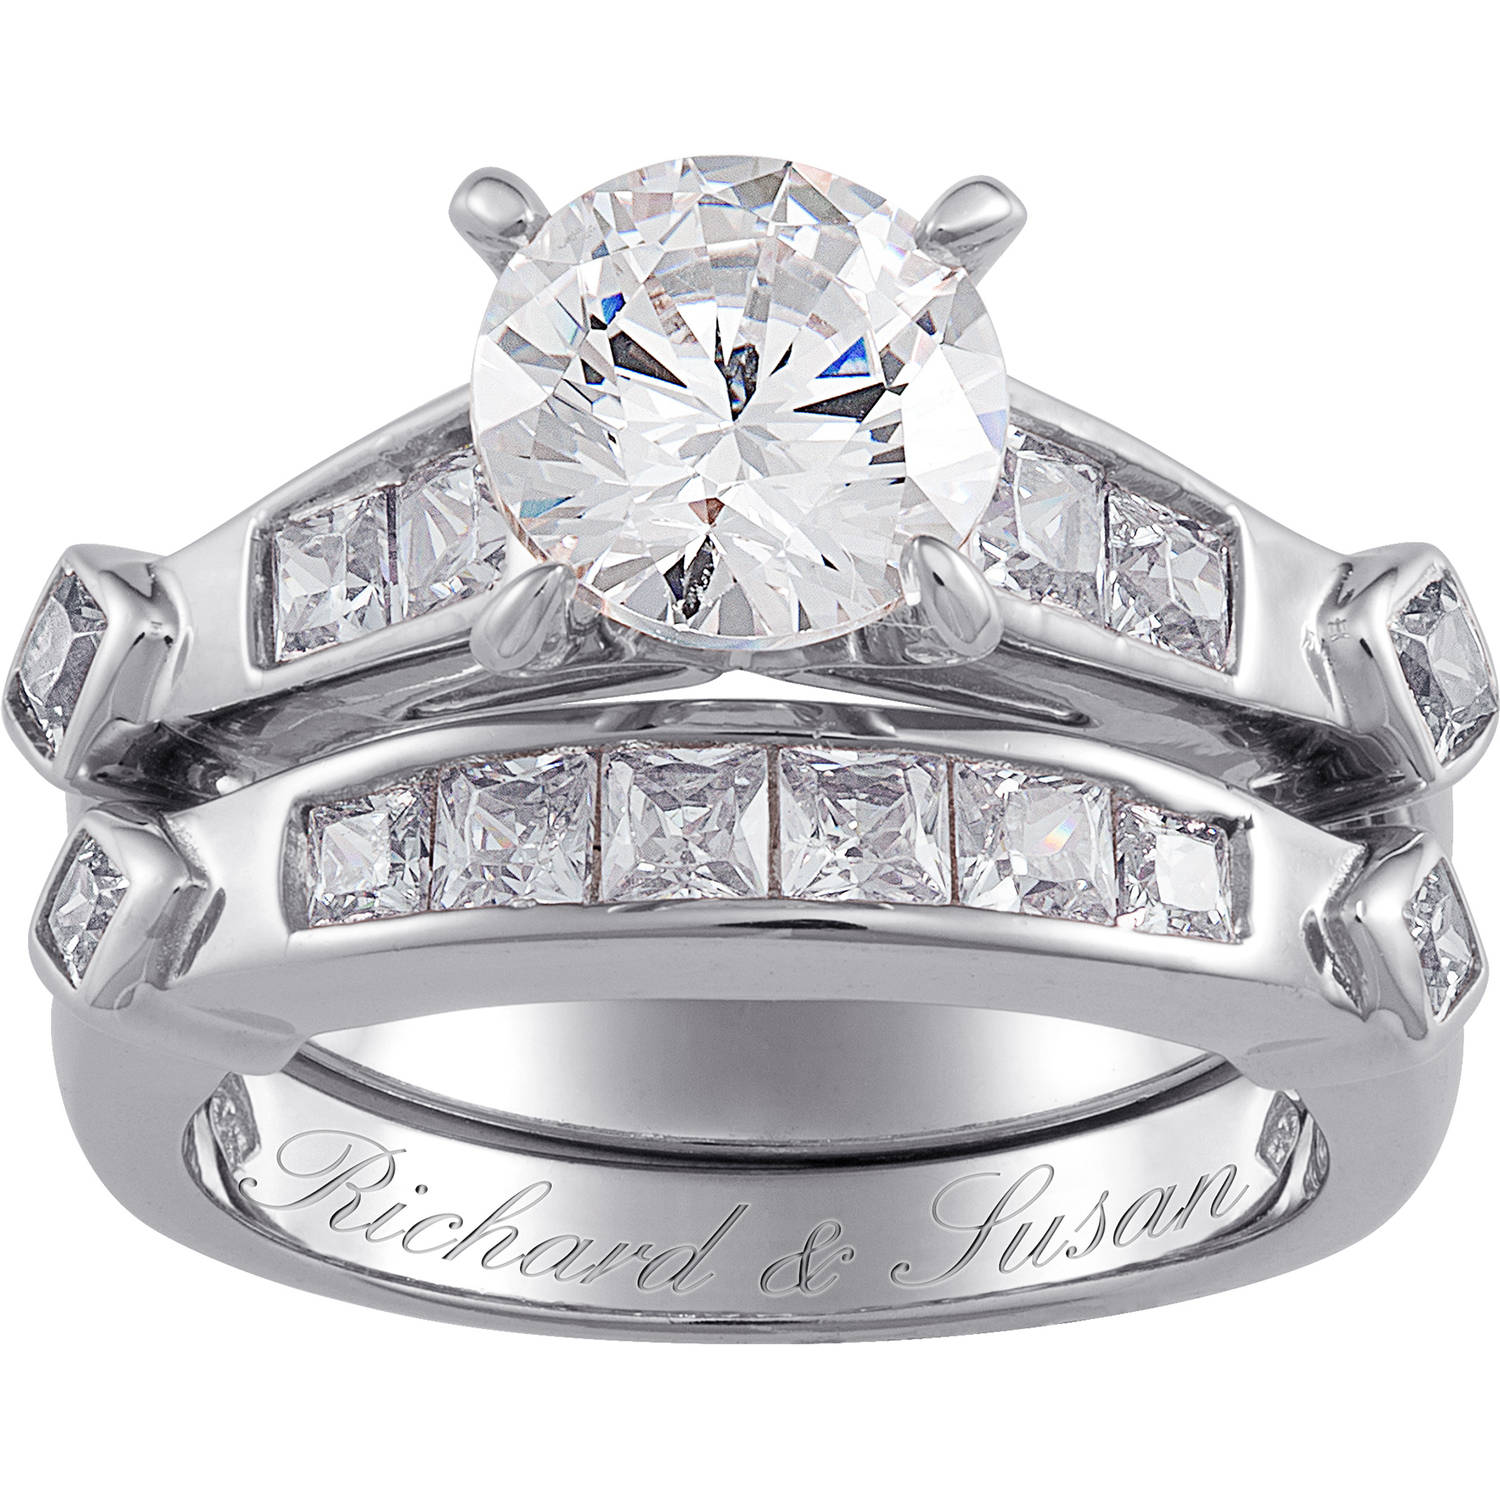 Permalink to Walmart Jewelry Wedding Rings